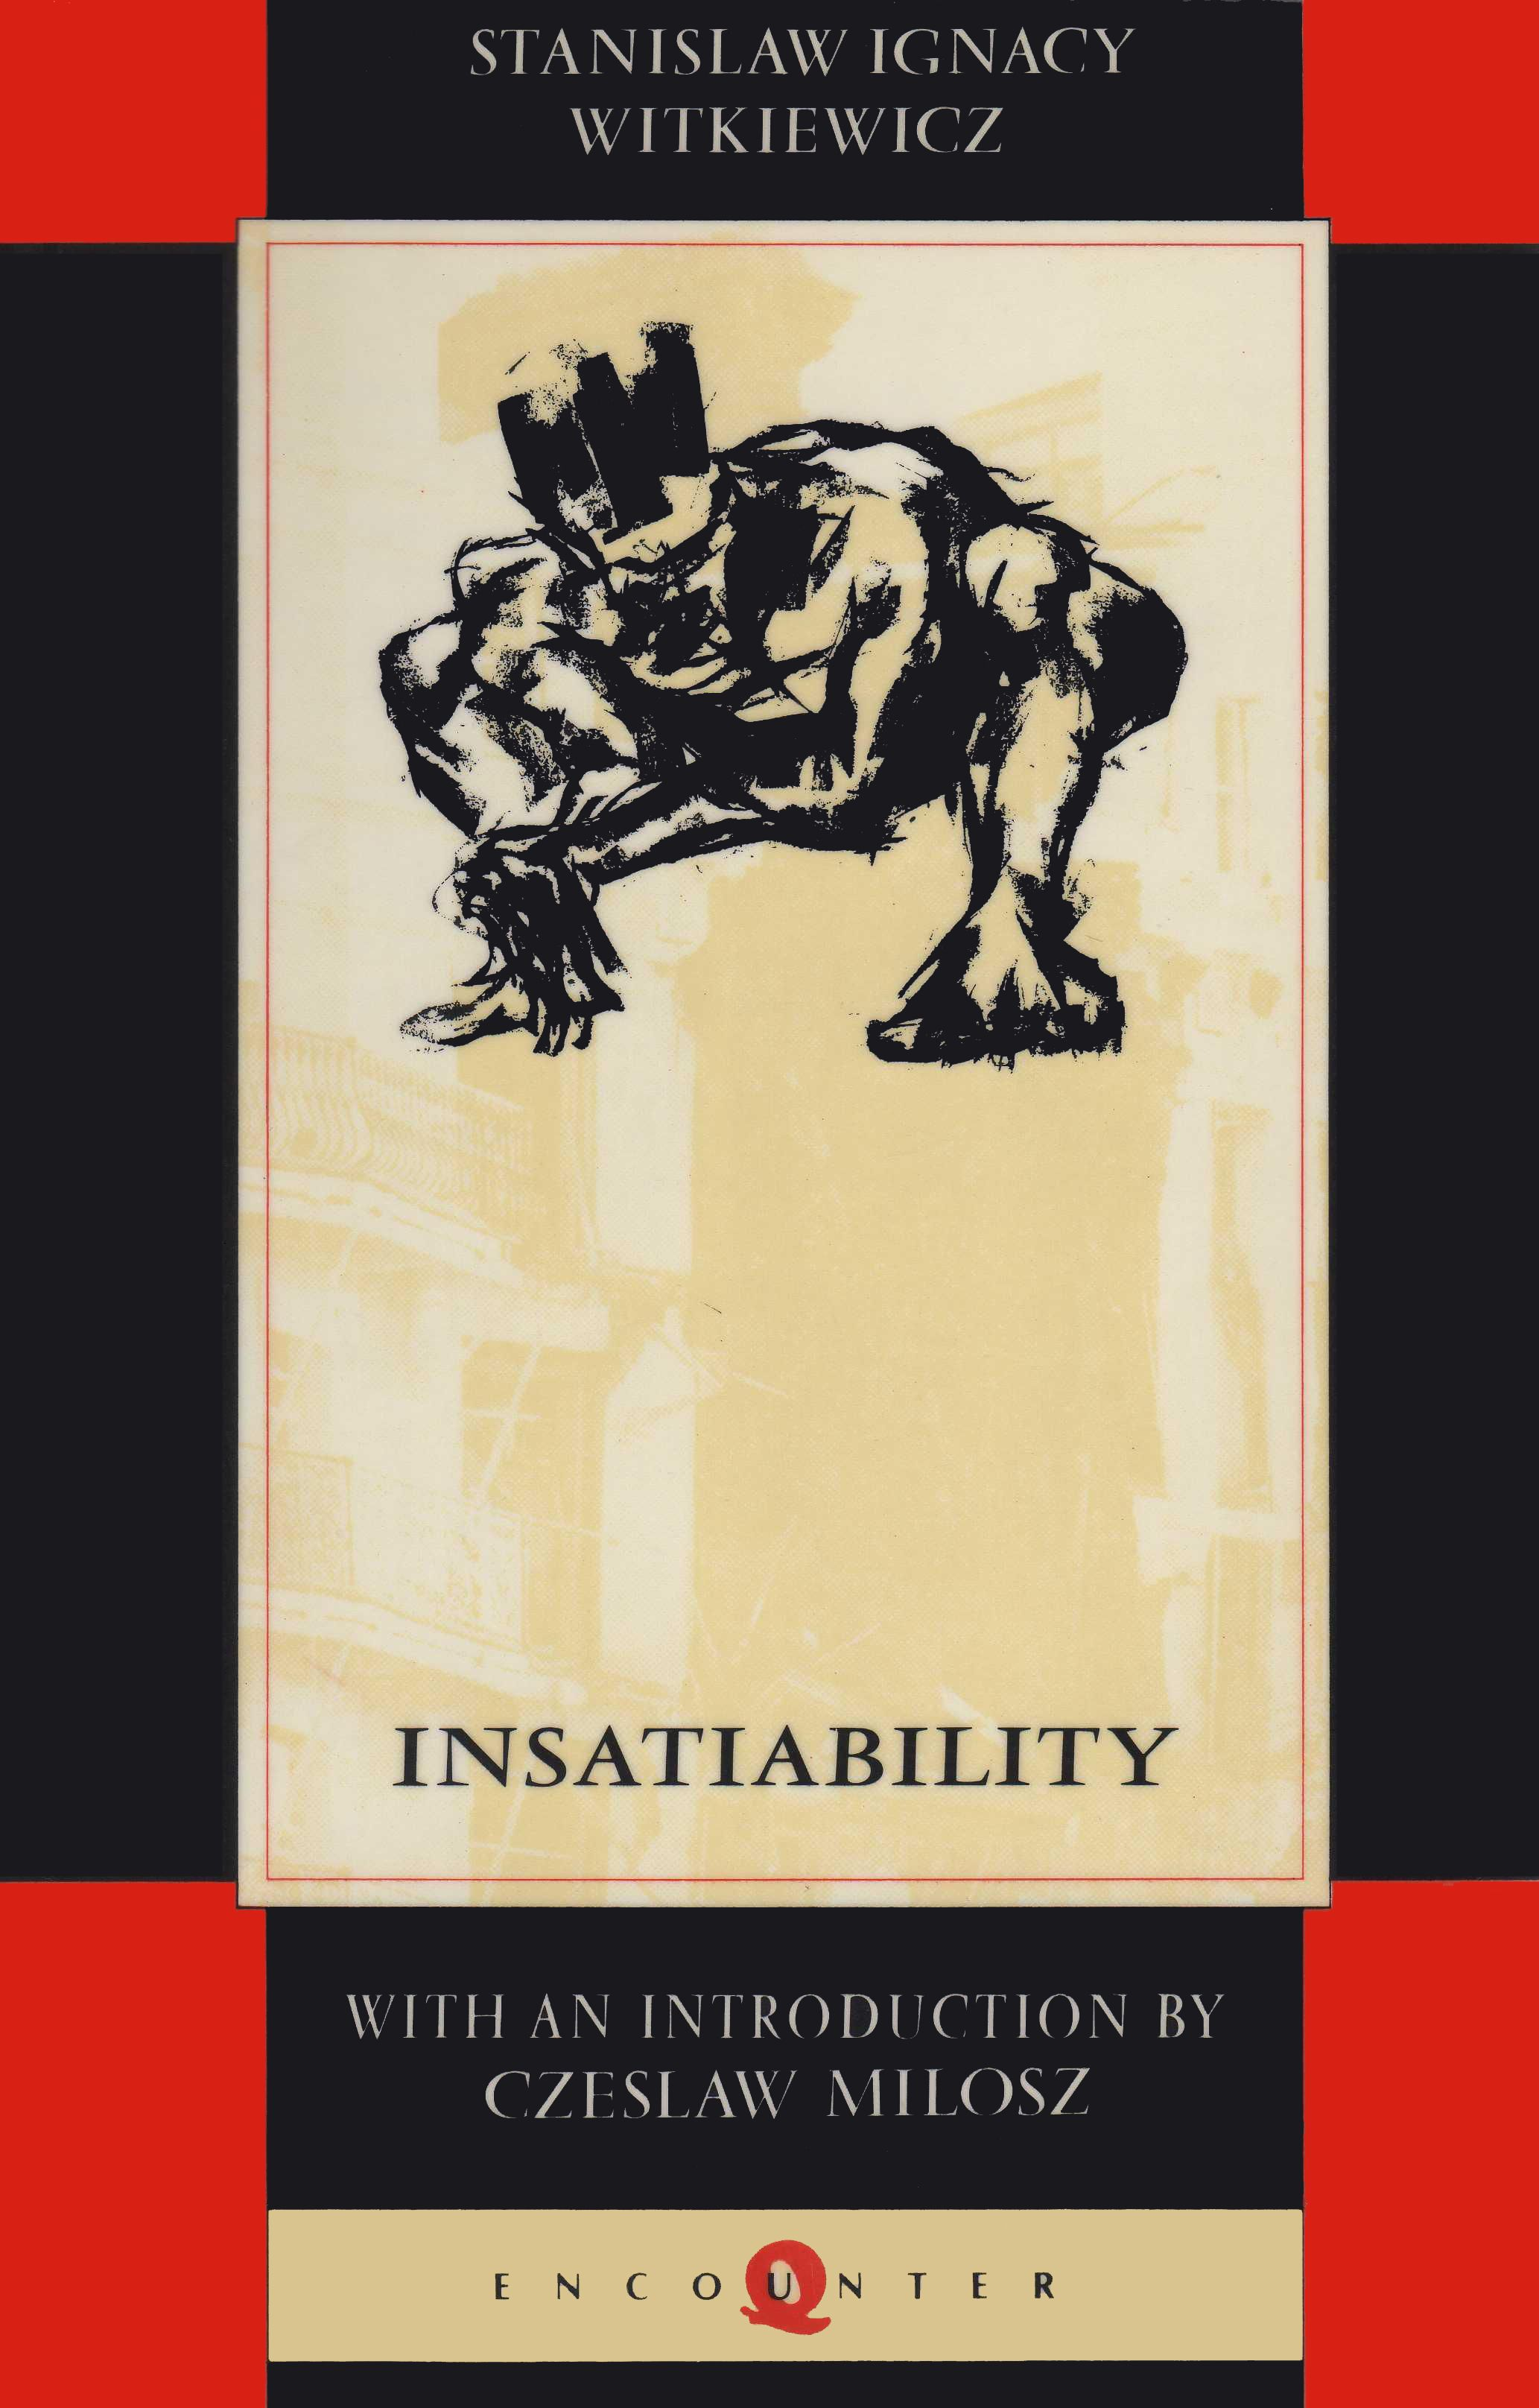 Cover of Witkacy's Insatiability, Encounter paperback English translation. Amazing, tattoo-worthy cover art by Robert Carter.